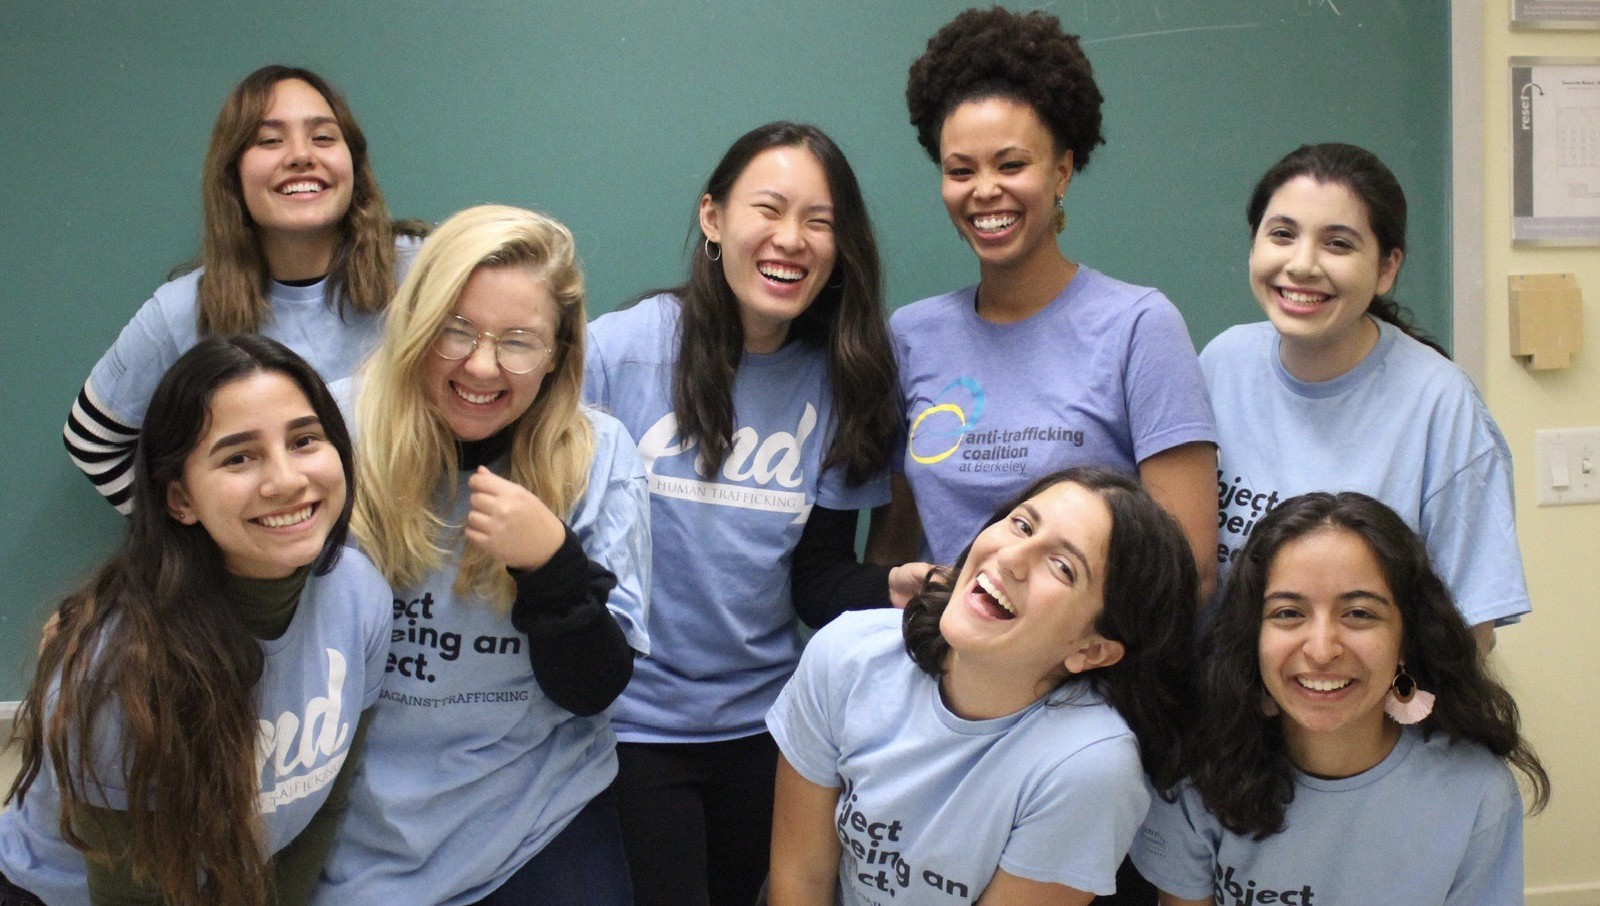 A few members from out Anti-Trafficking Coalition at Berkeley team!